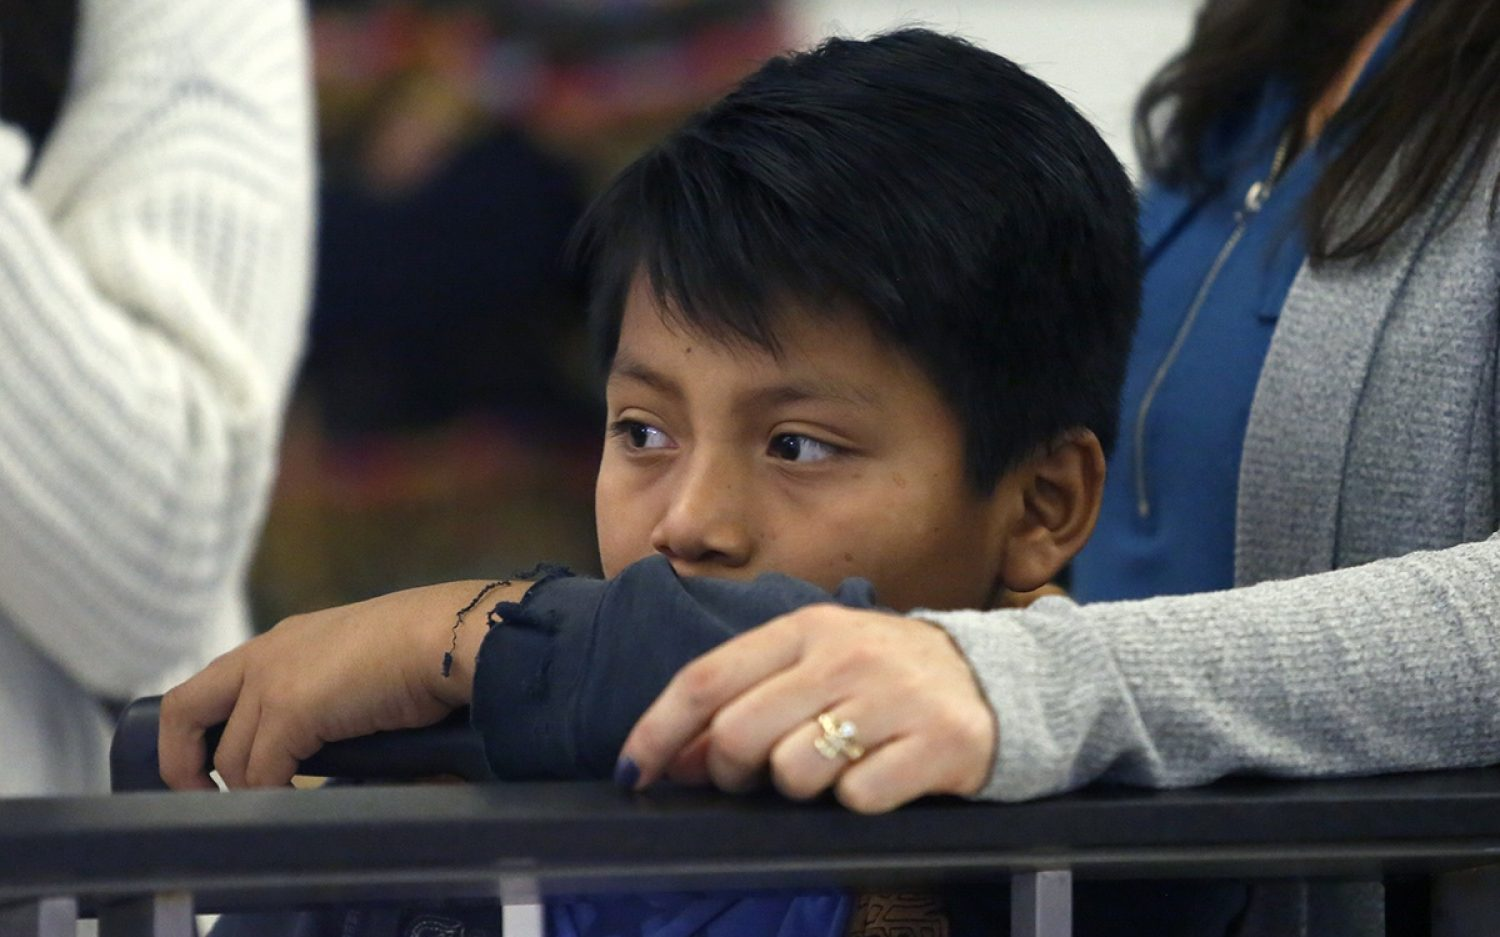 Immigrant families still separated